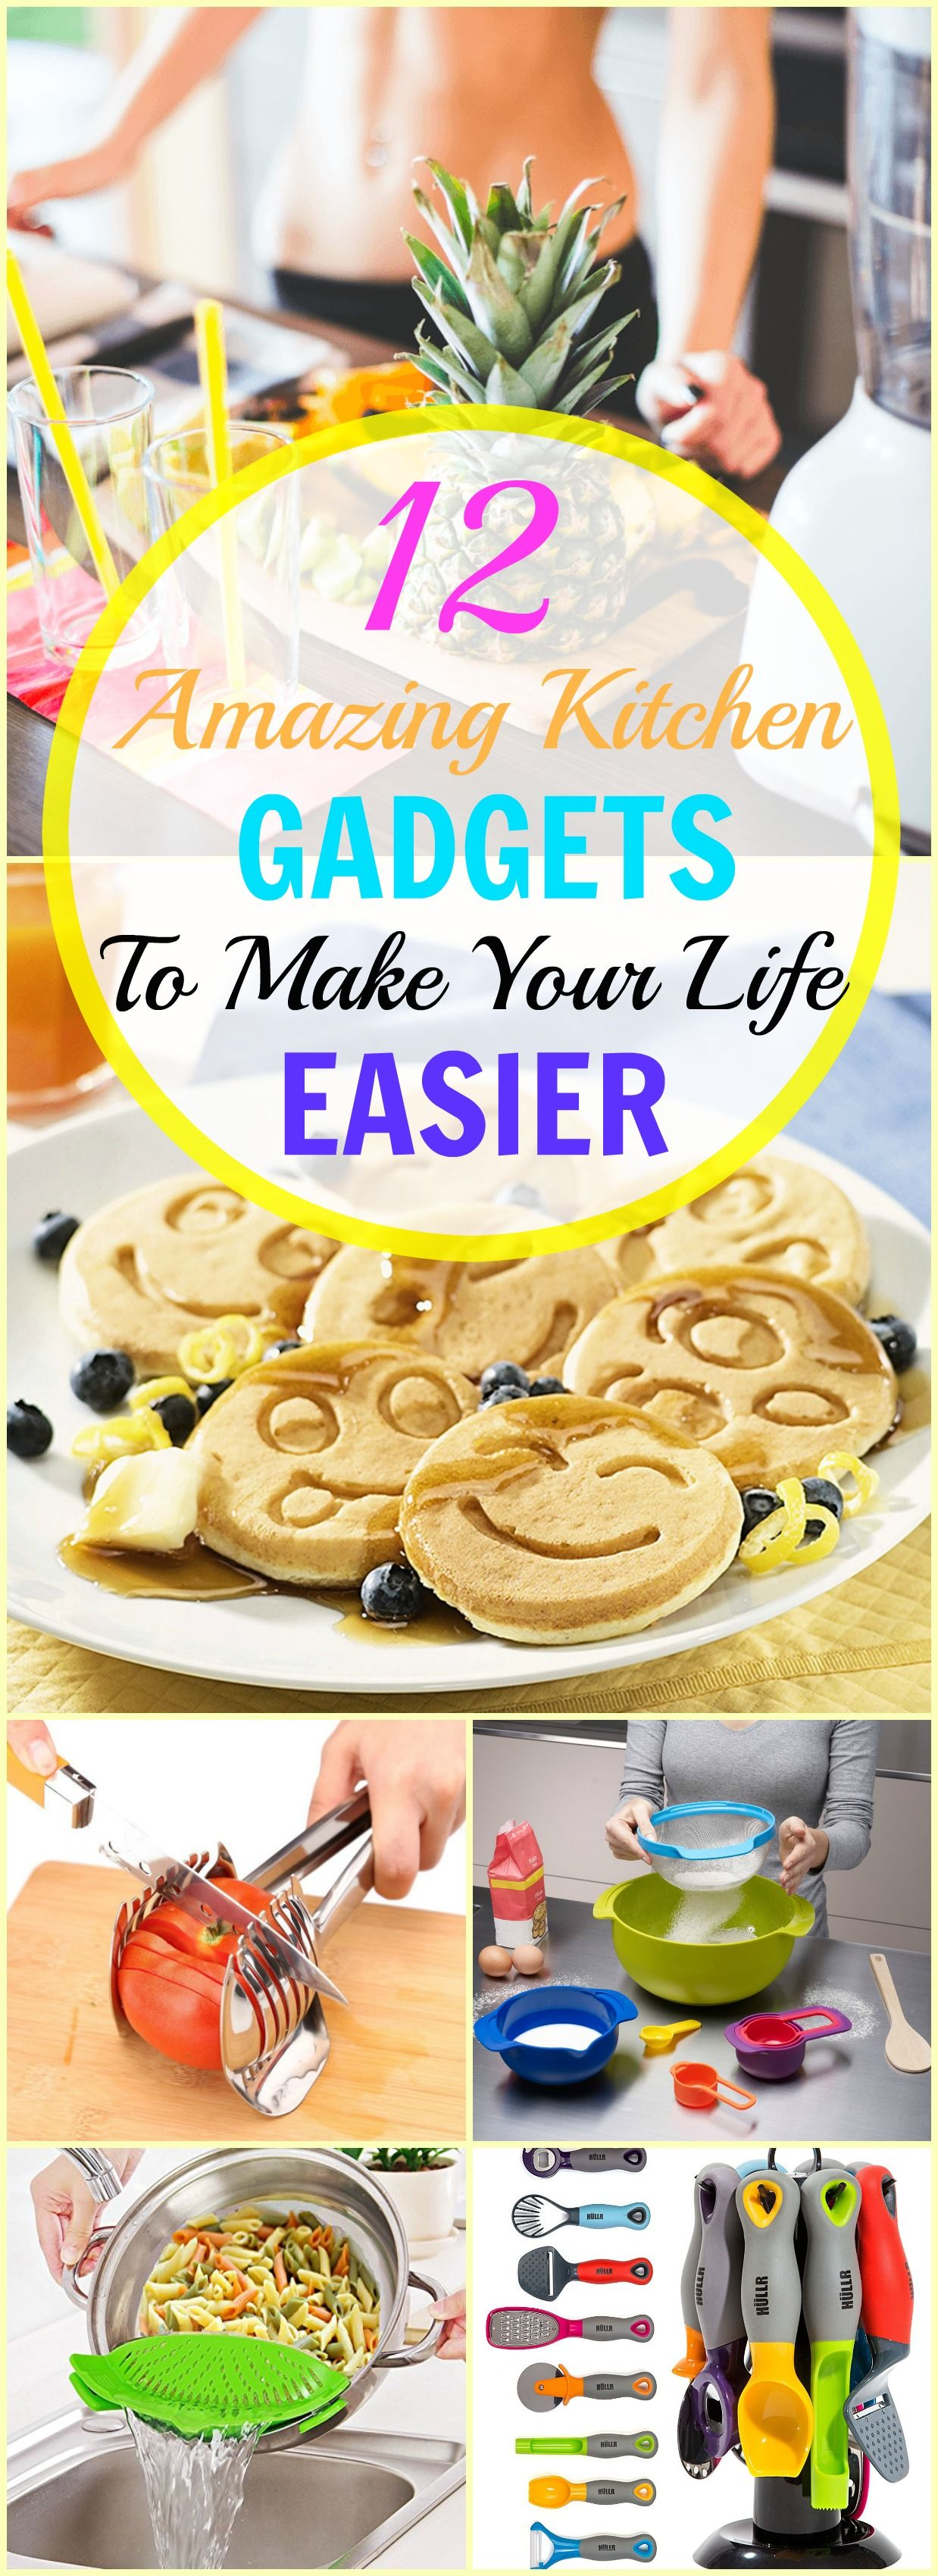 amazing kitchen gadgets stonewall com 12 to make your life easier kisses for